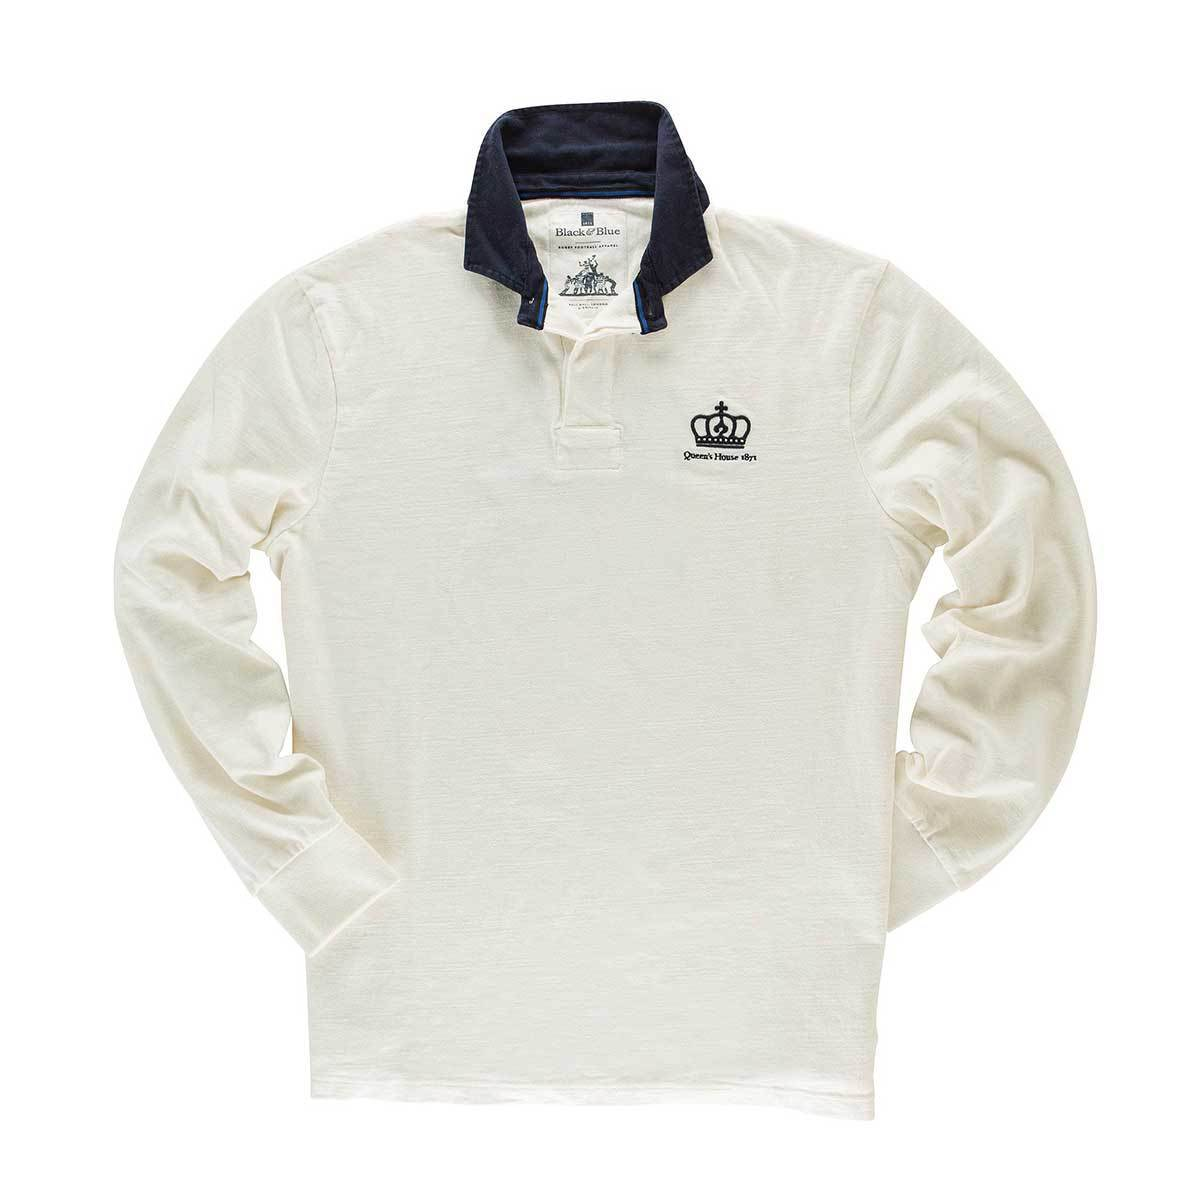 Vintage, Classic Cotton Rugby Shirt | Black & Blue 1871 | Queen's House 1871 Rugby Shirt